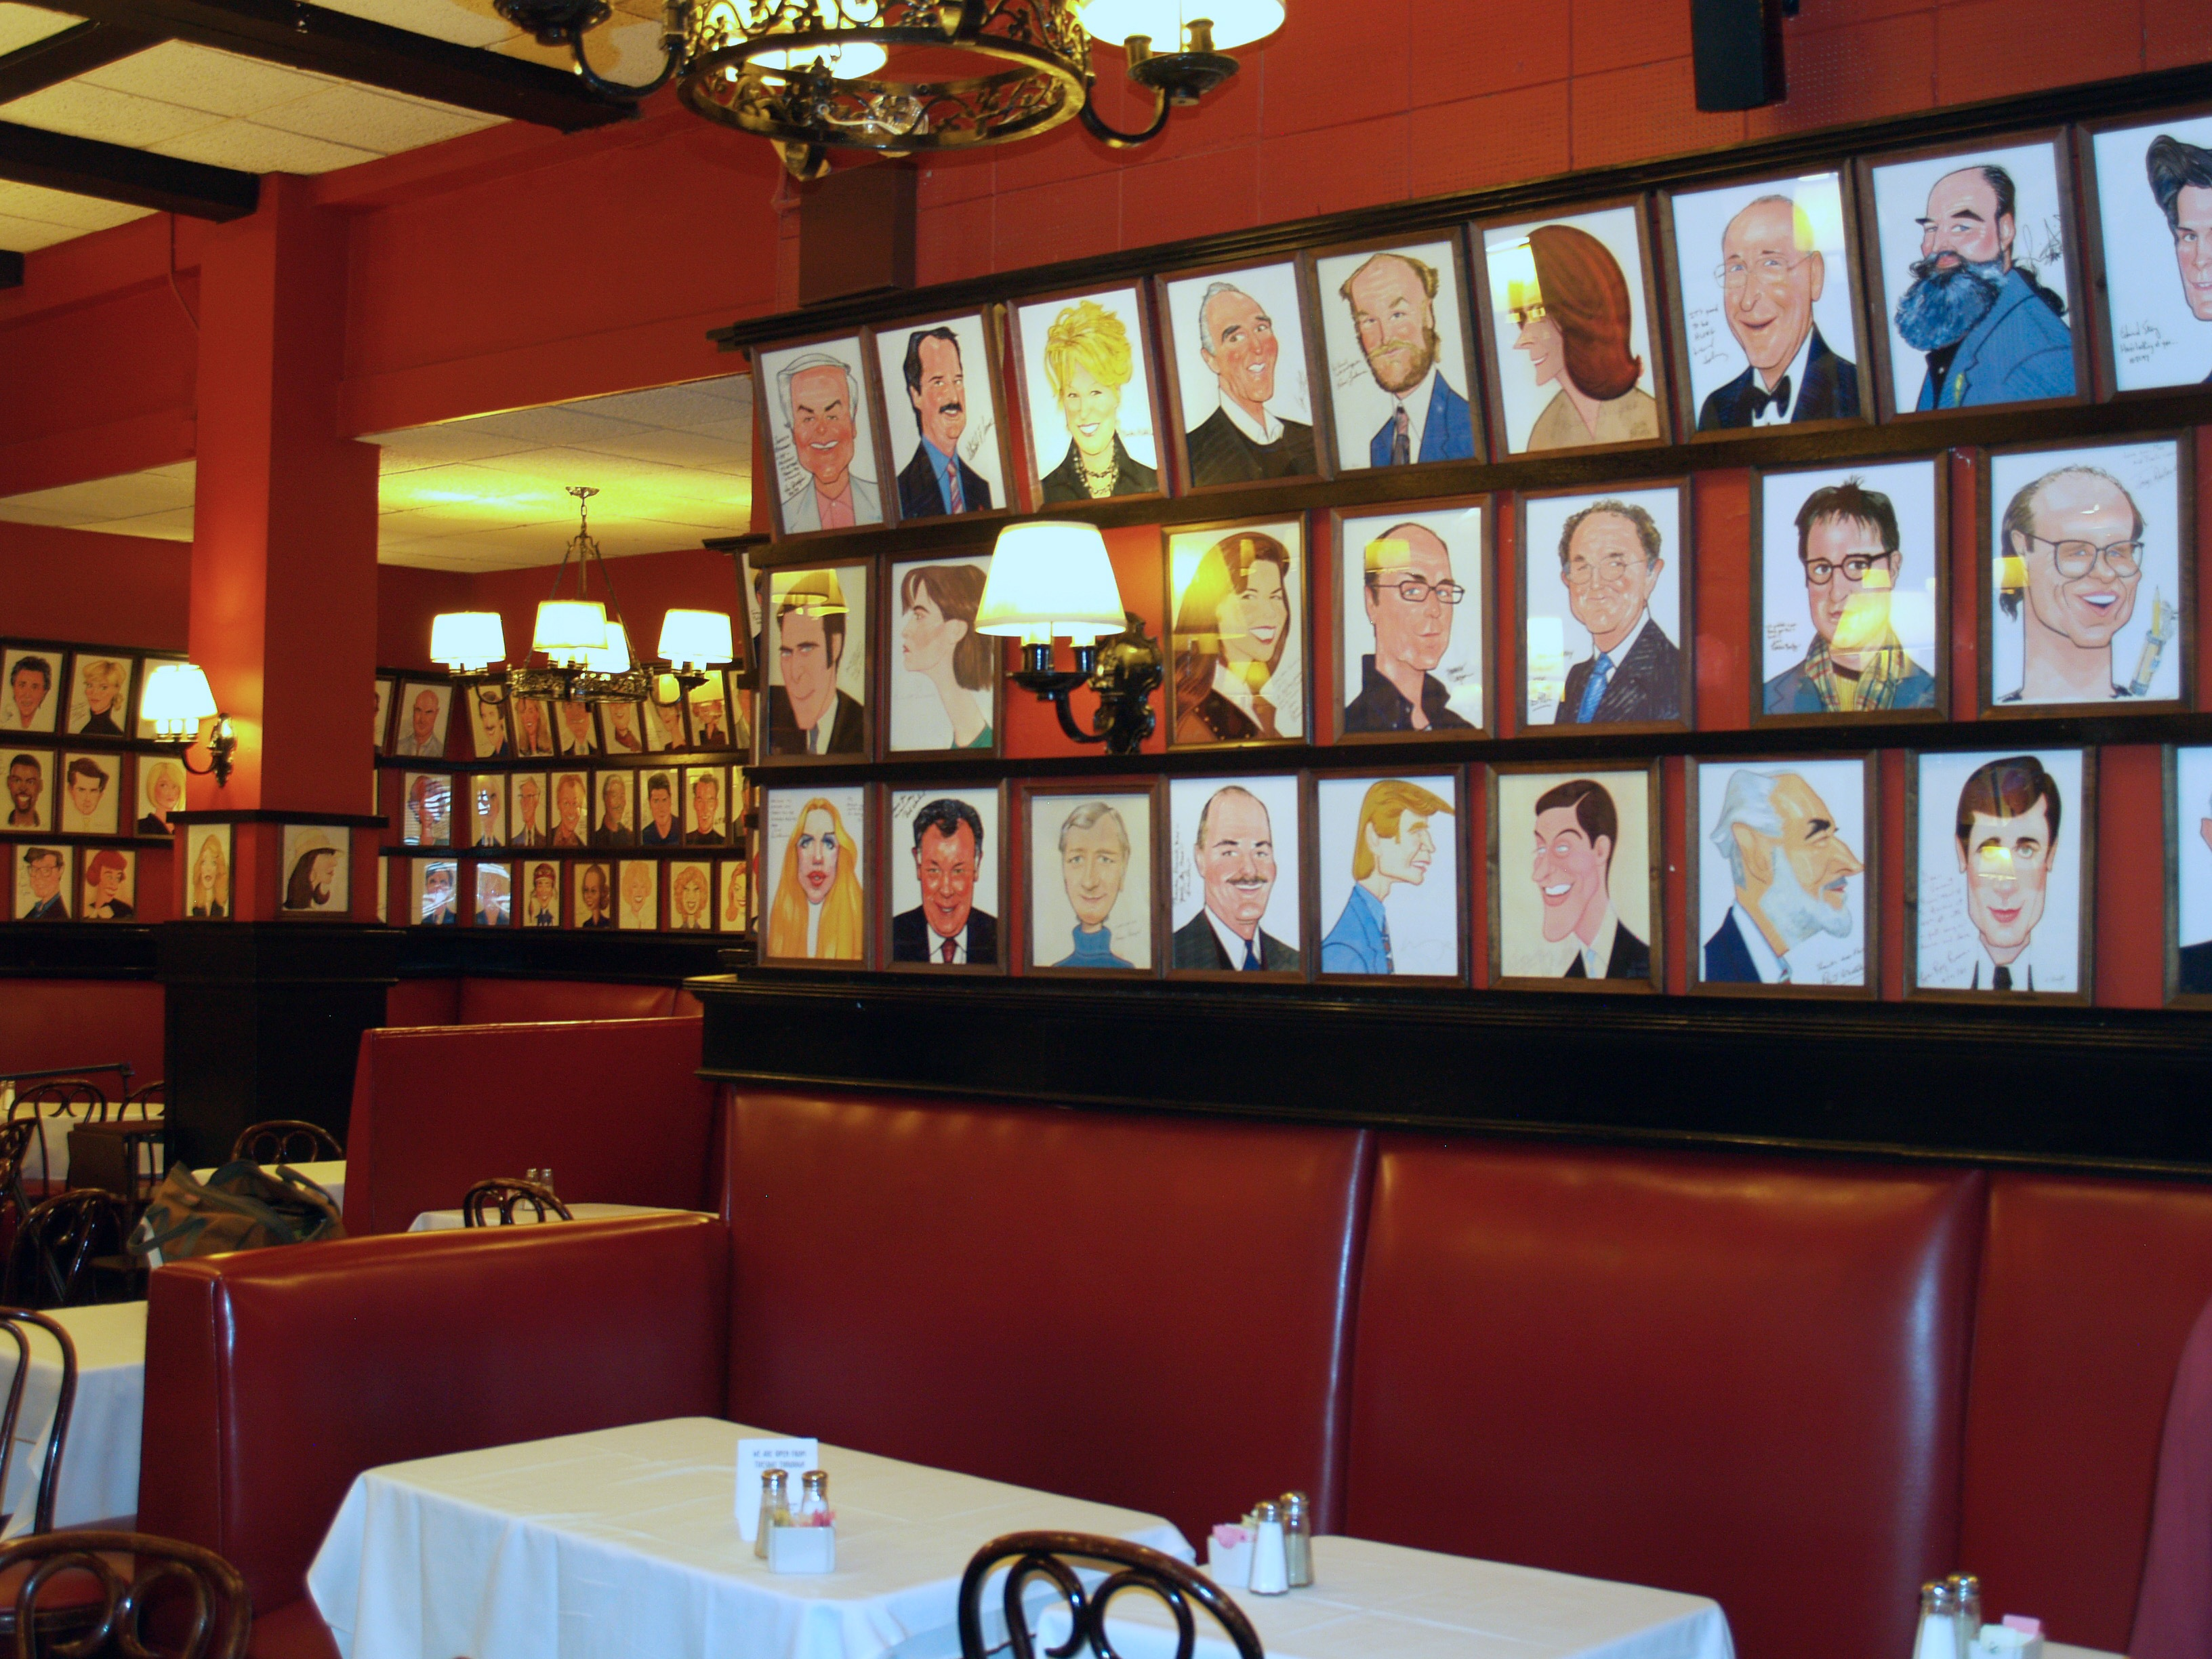 An interior photo of Sardi's Restaurant in New York City.